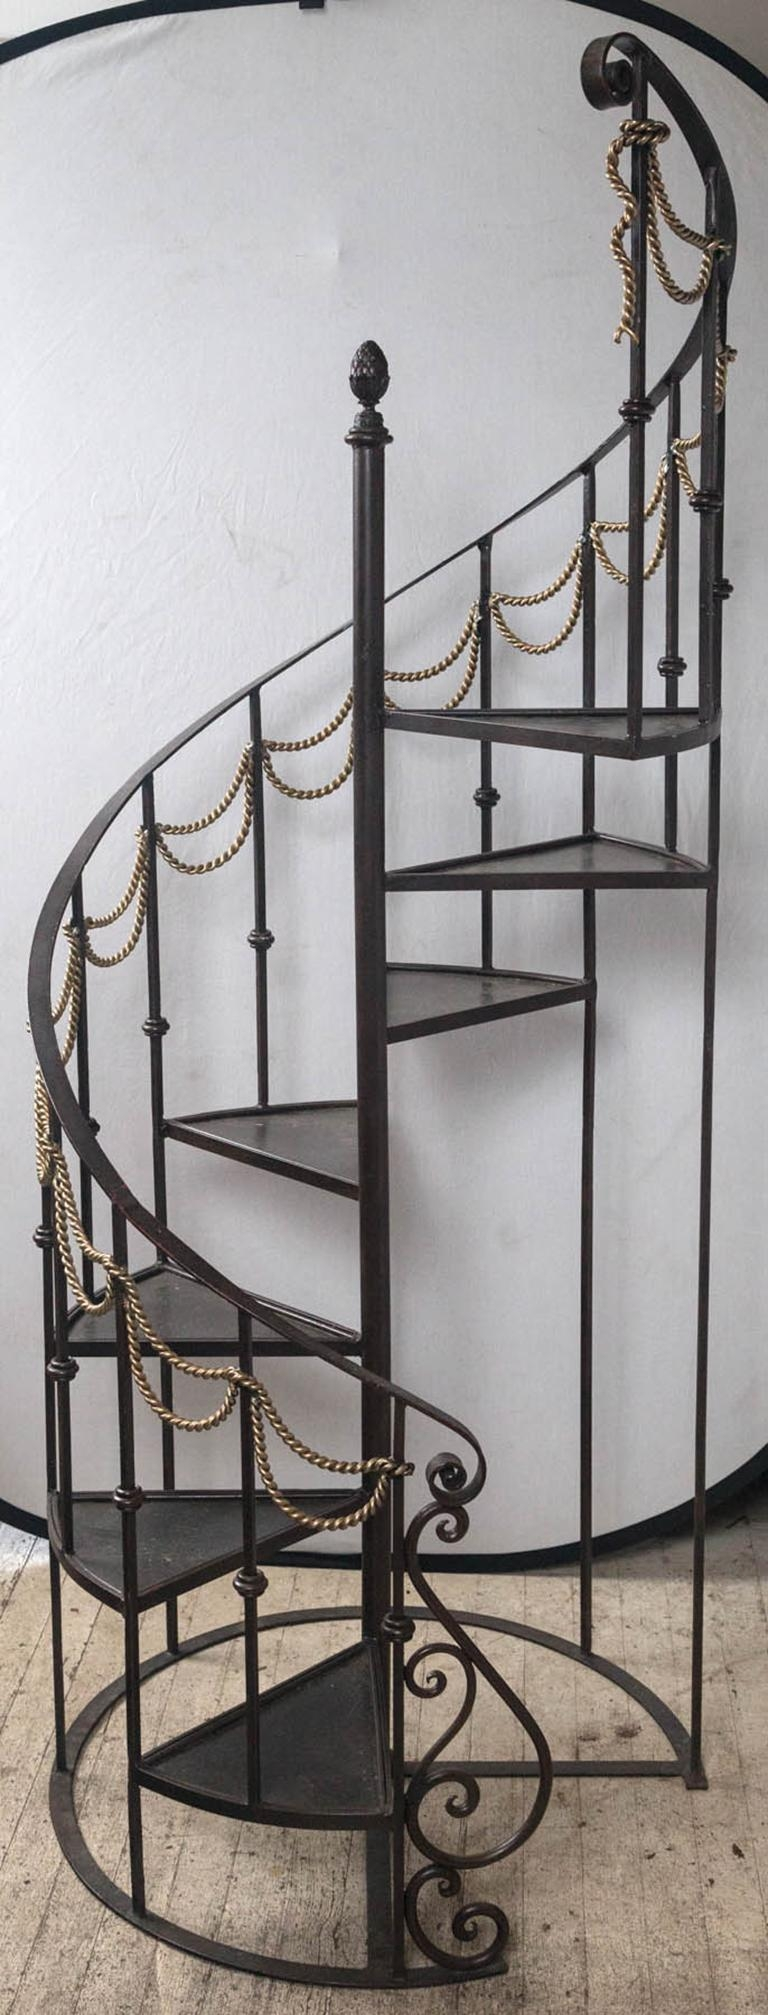 Spiral Bent Iron Stairs For Sale At 1Stdibs | Steel Stairs For Sale | Spiral | Indoor | Interior | Cantilever | Straight